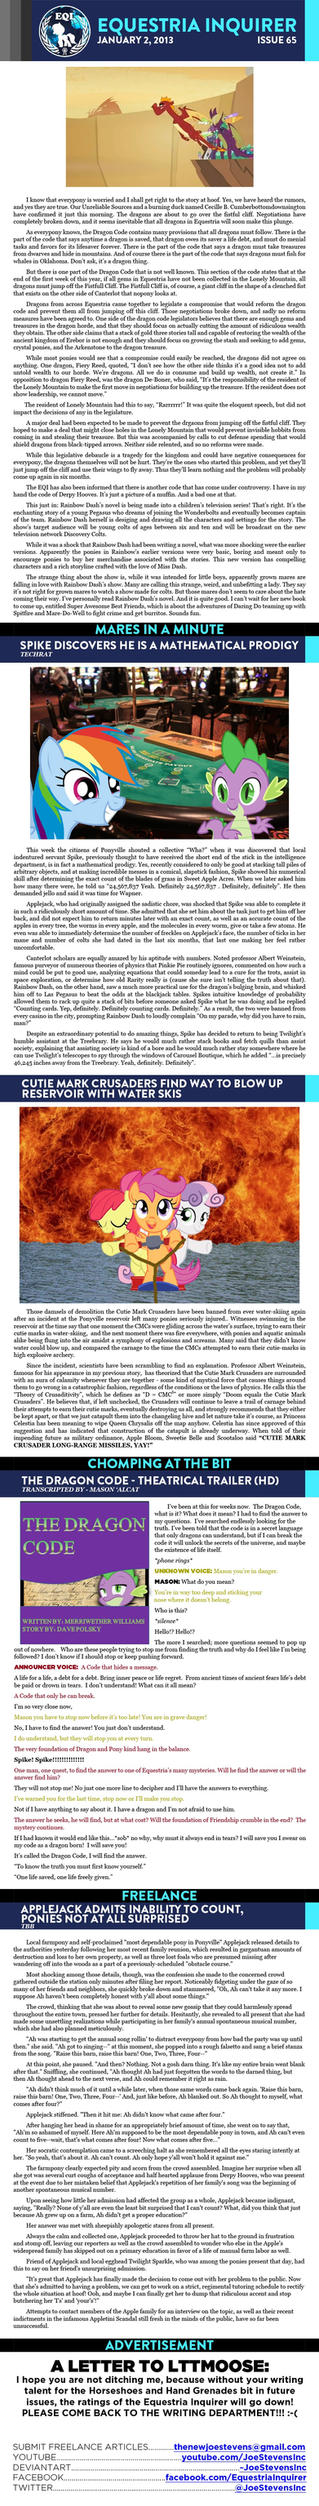 Equestria Inquirer 65 by JoeStevensInc